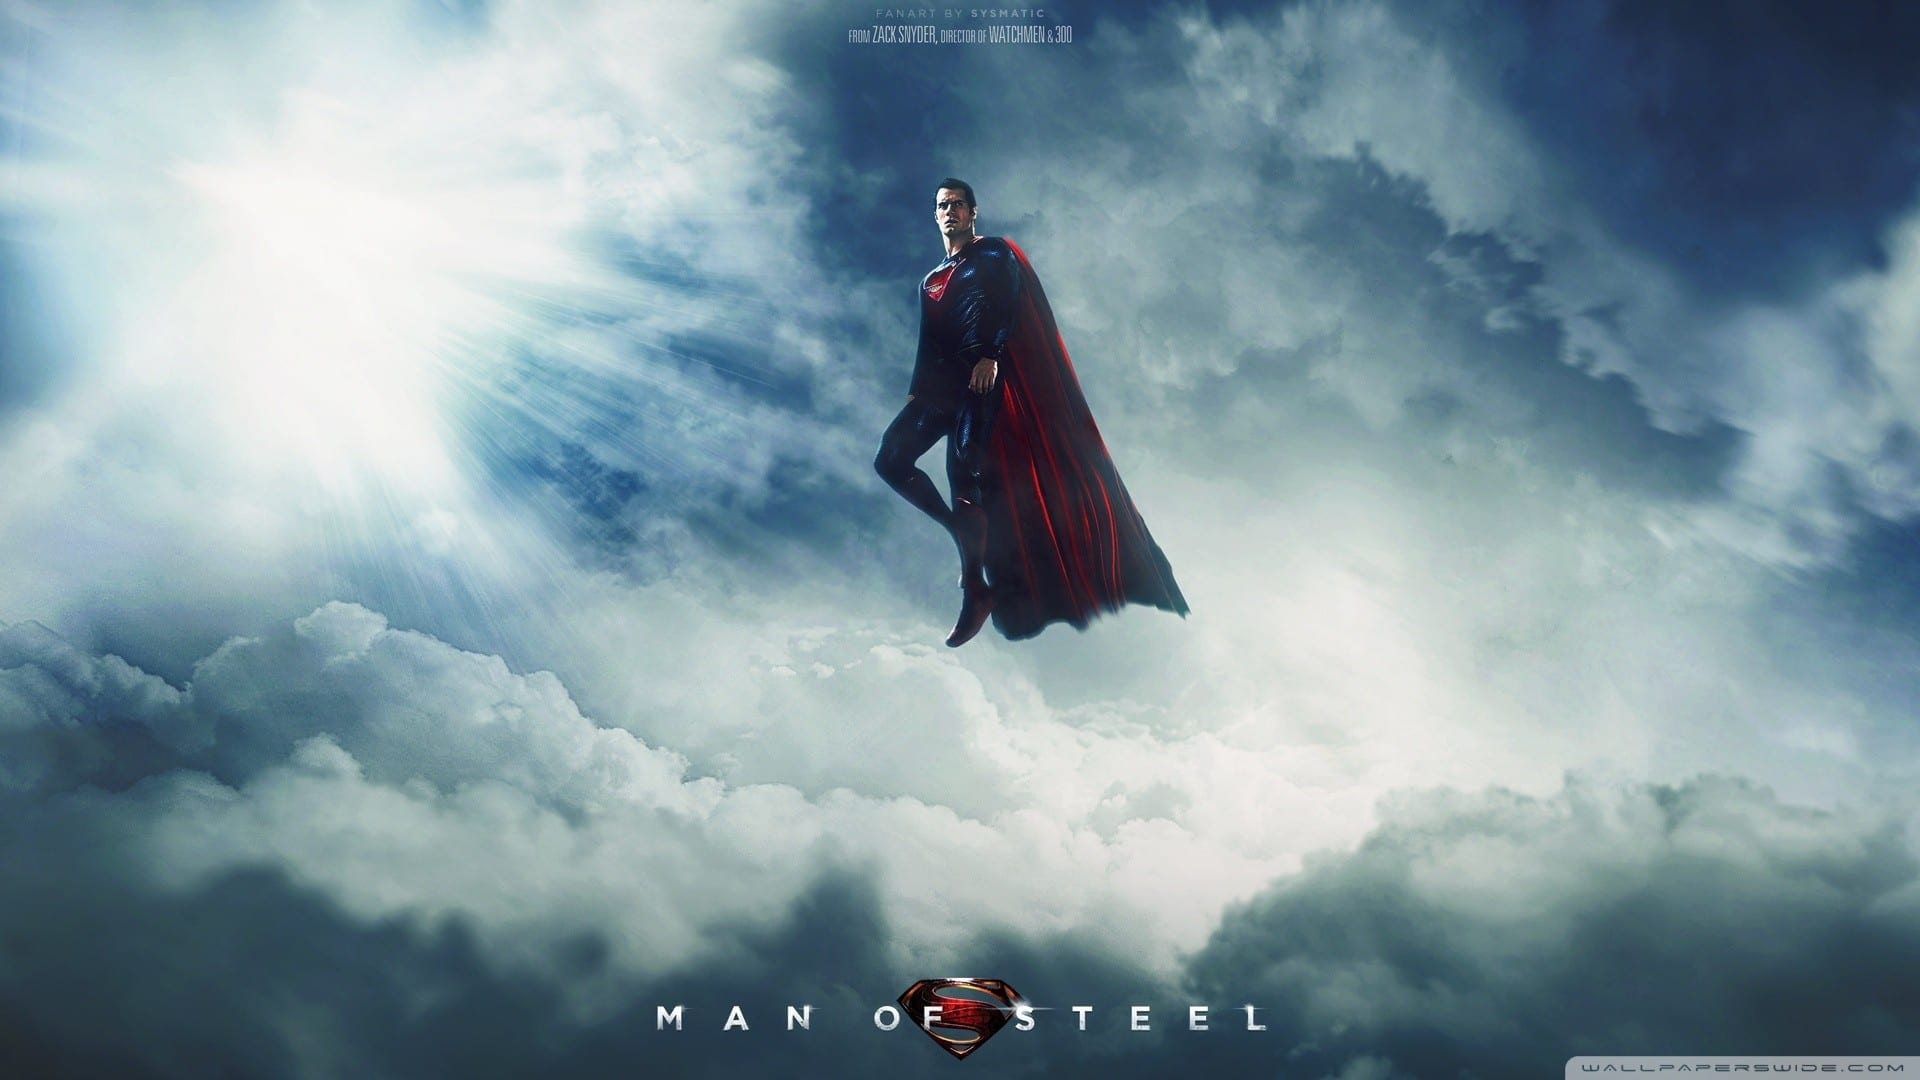 NEWS – Man of Steel 2